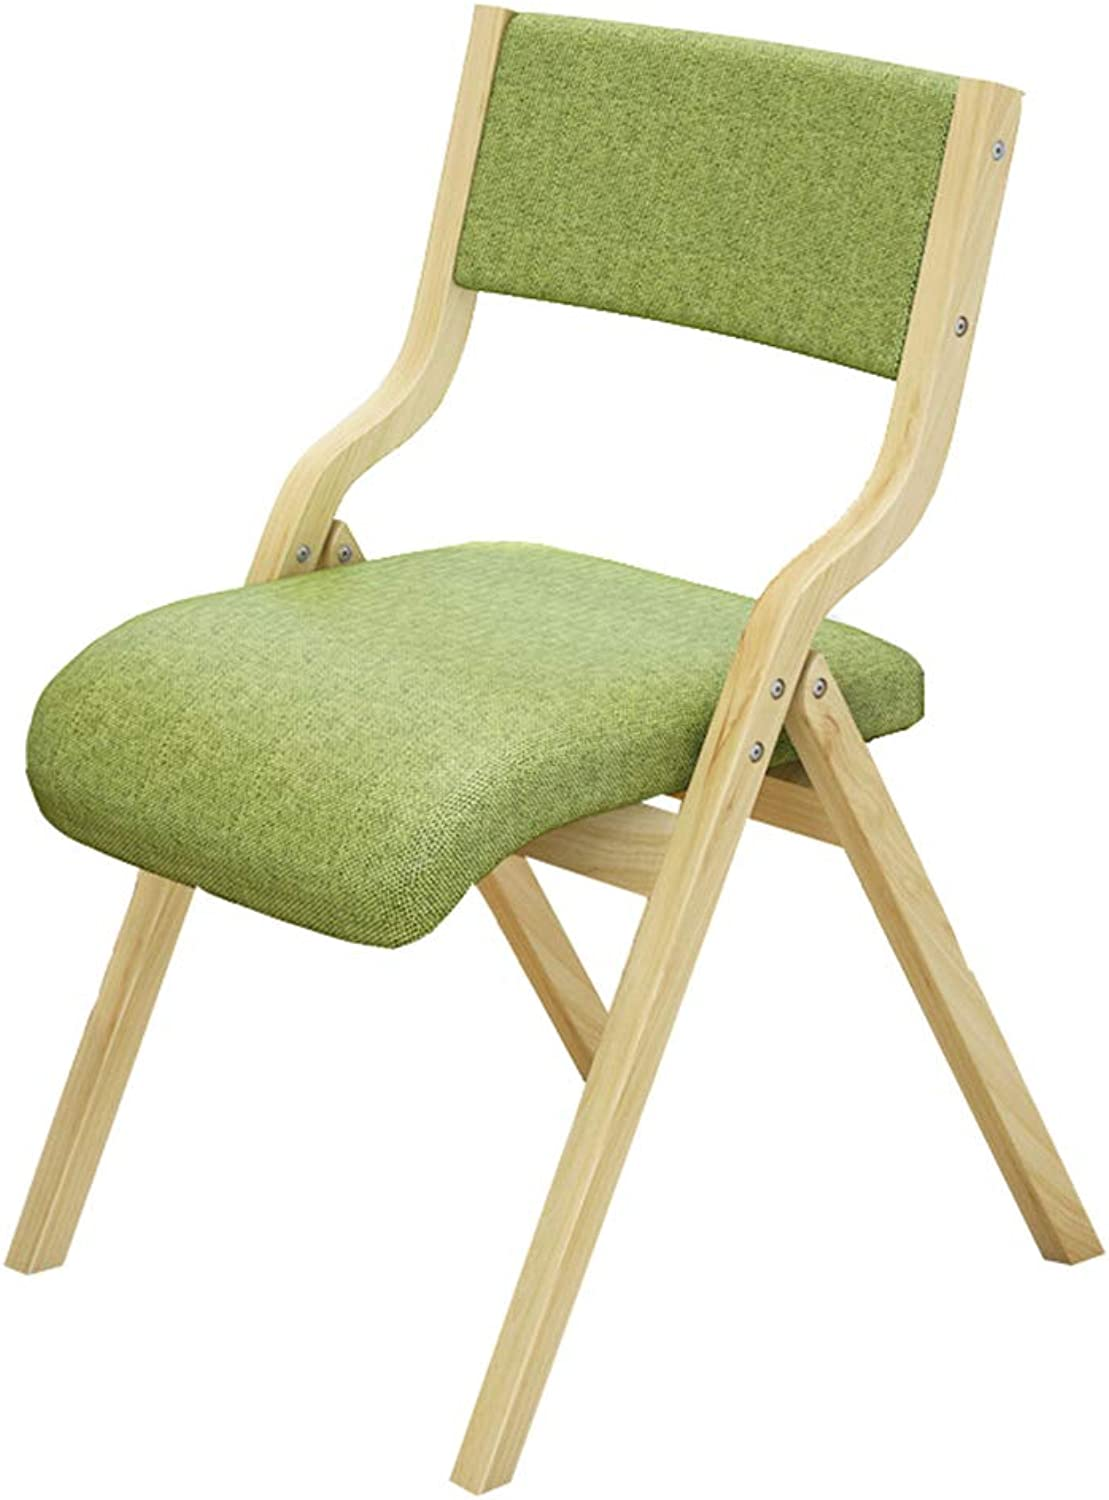 CAIJUN Chair Foldable Solid Wood Frame Thick Sponge with Backrest Breathable Comfortable Whole Outfit, 4 colors (color   Green, Size   41x47cm)